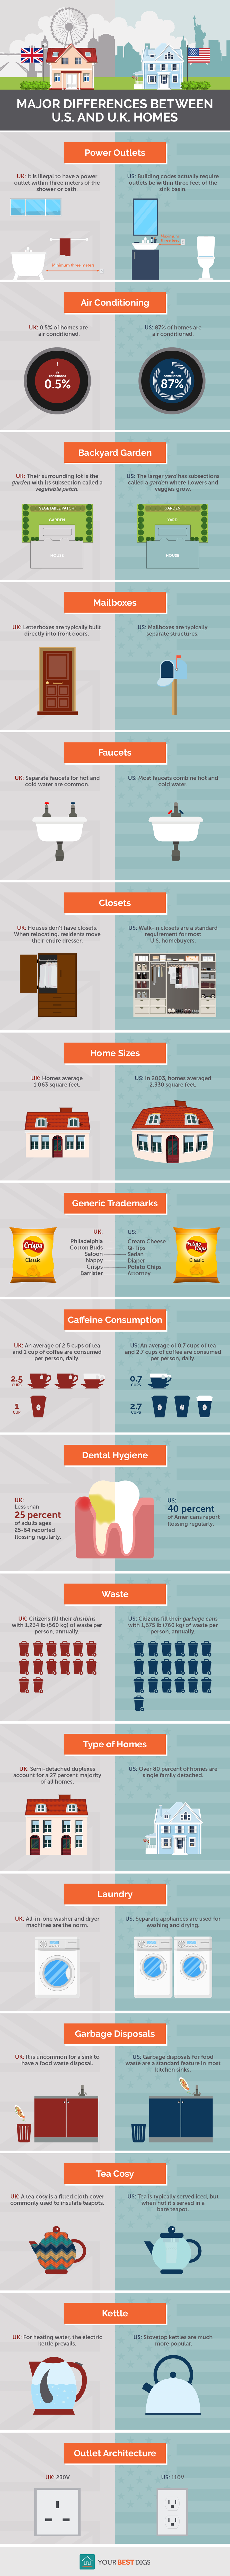 How The US & UK Homes Are Contrasting - Infographic